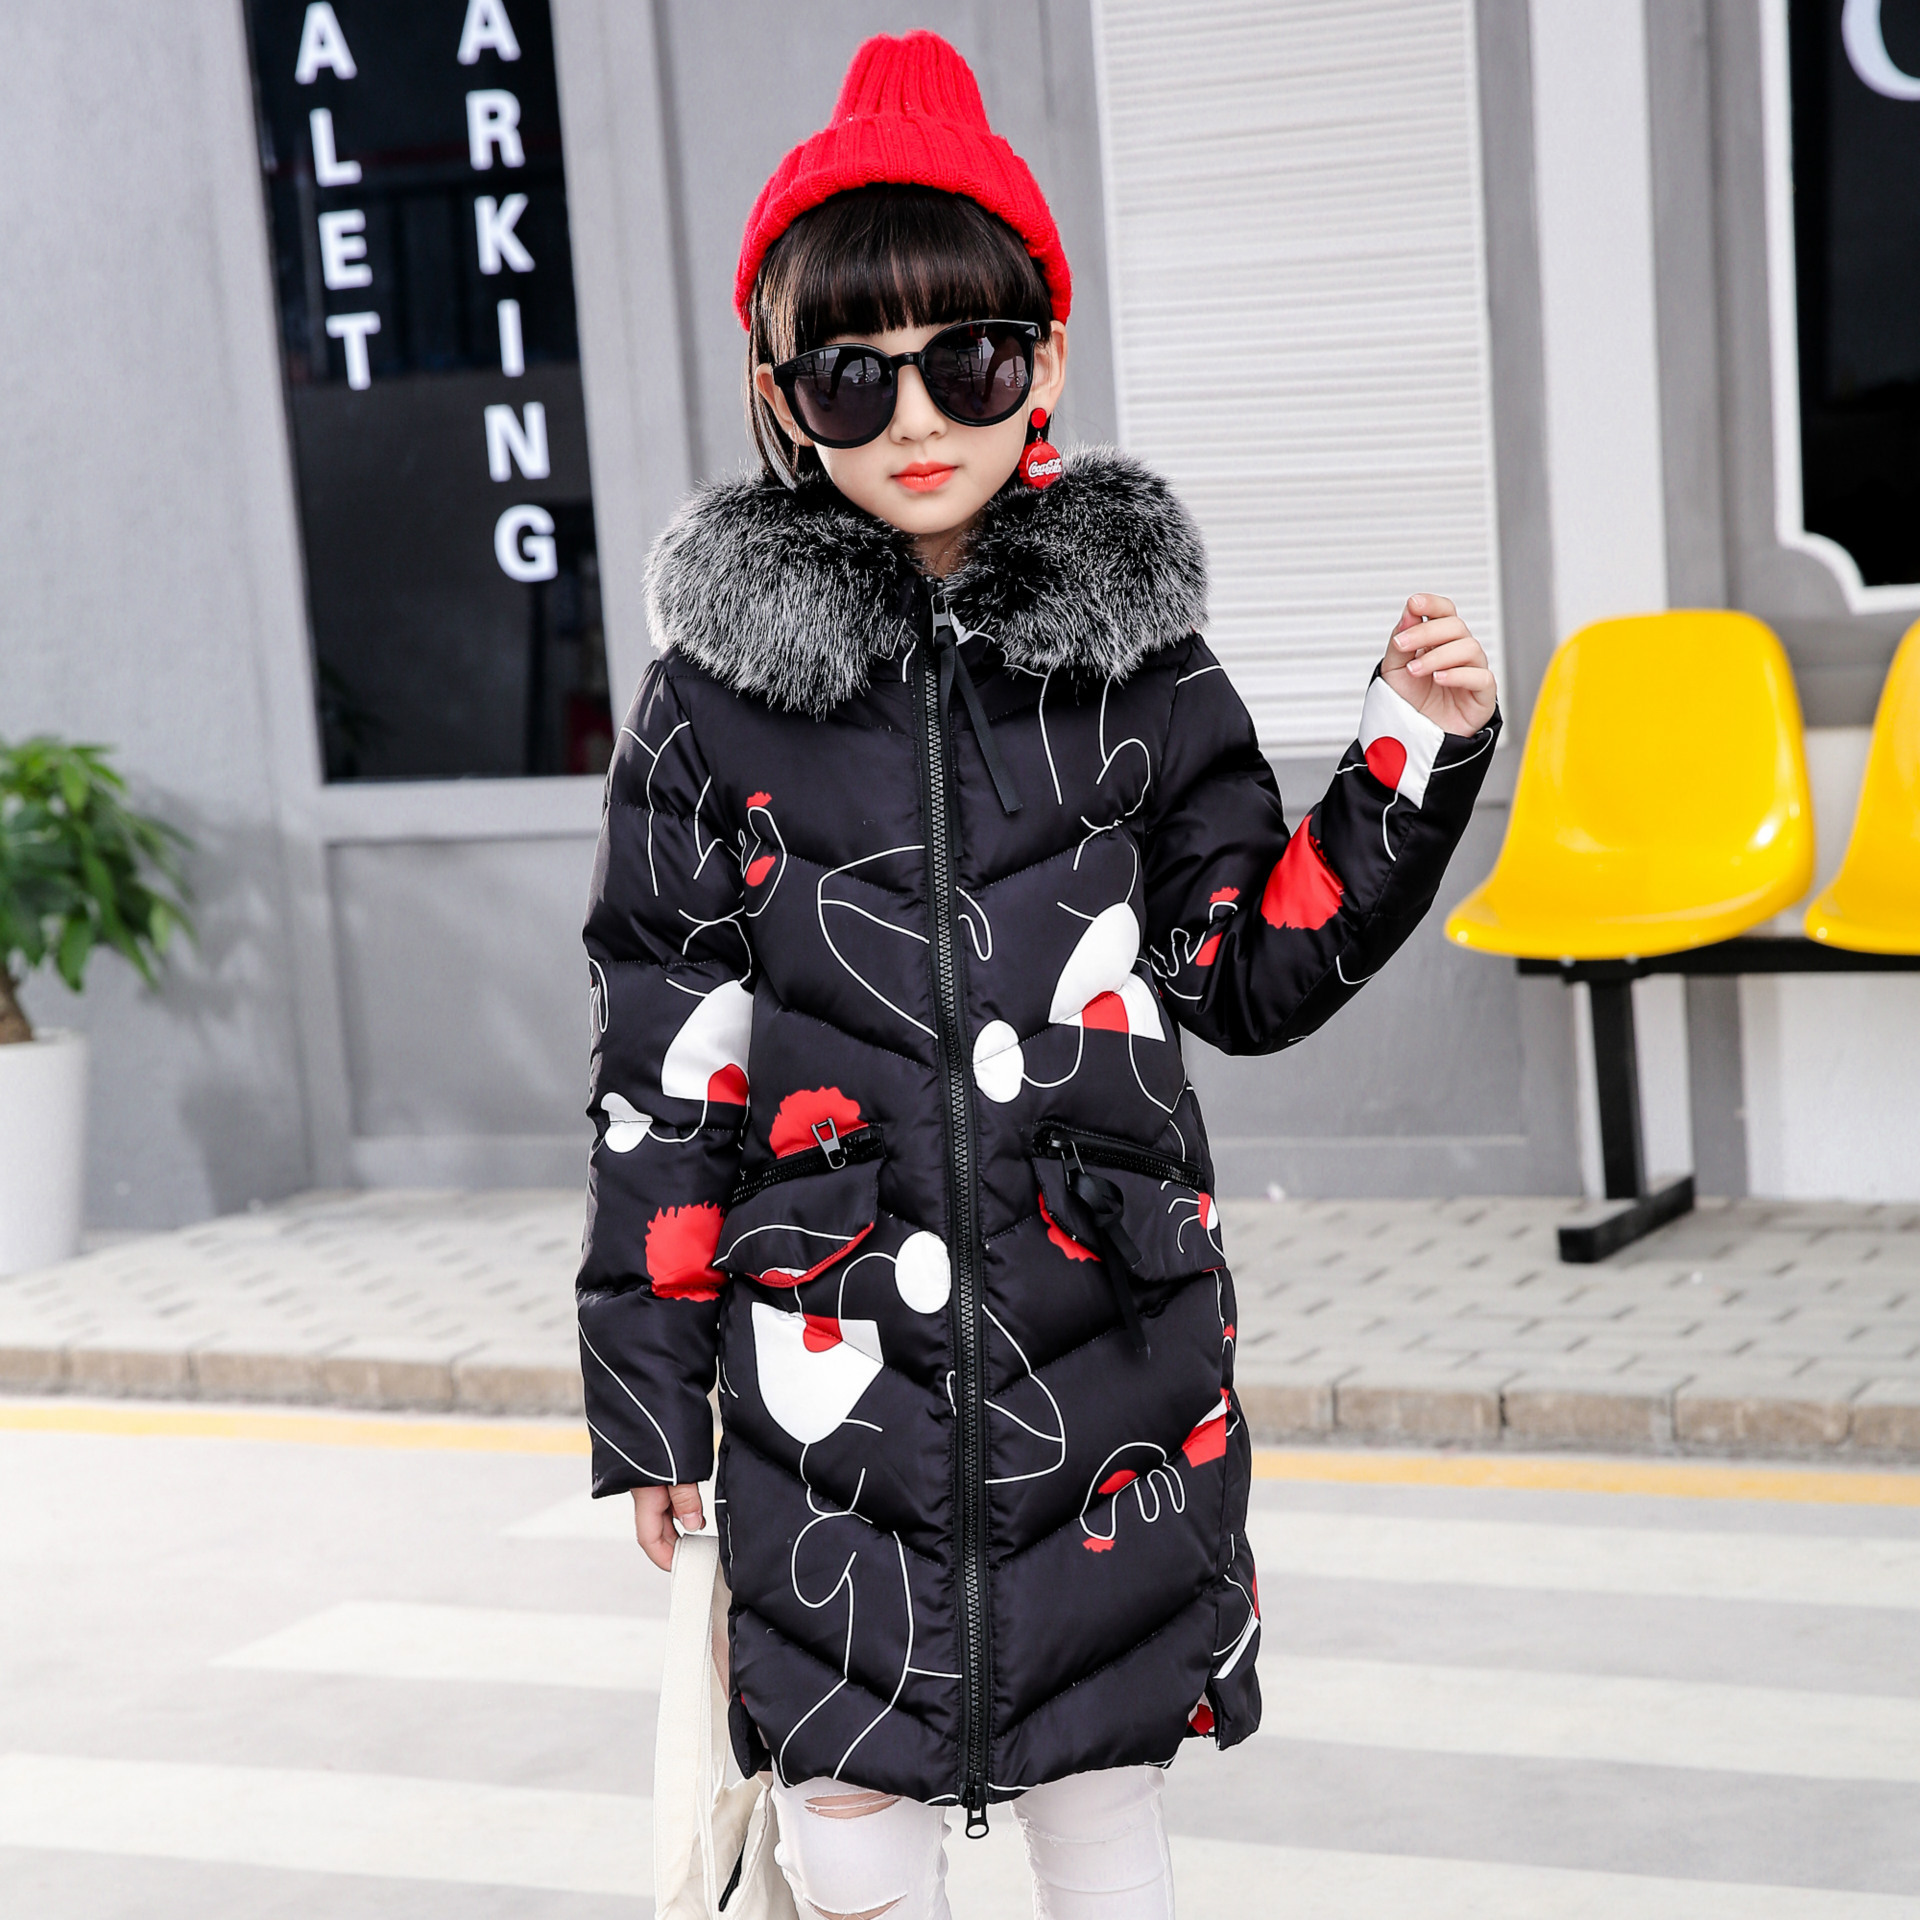 The Children Down In The Long White Eiderdown Girls Thick Winter Coat Fur Collar Down Jacket Children's lucky panda 2016 woman winter cotton thickened slim slim down in the long coat coat of students lkb186